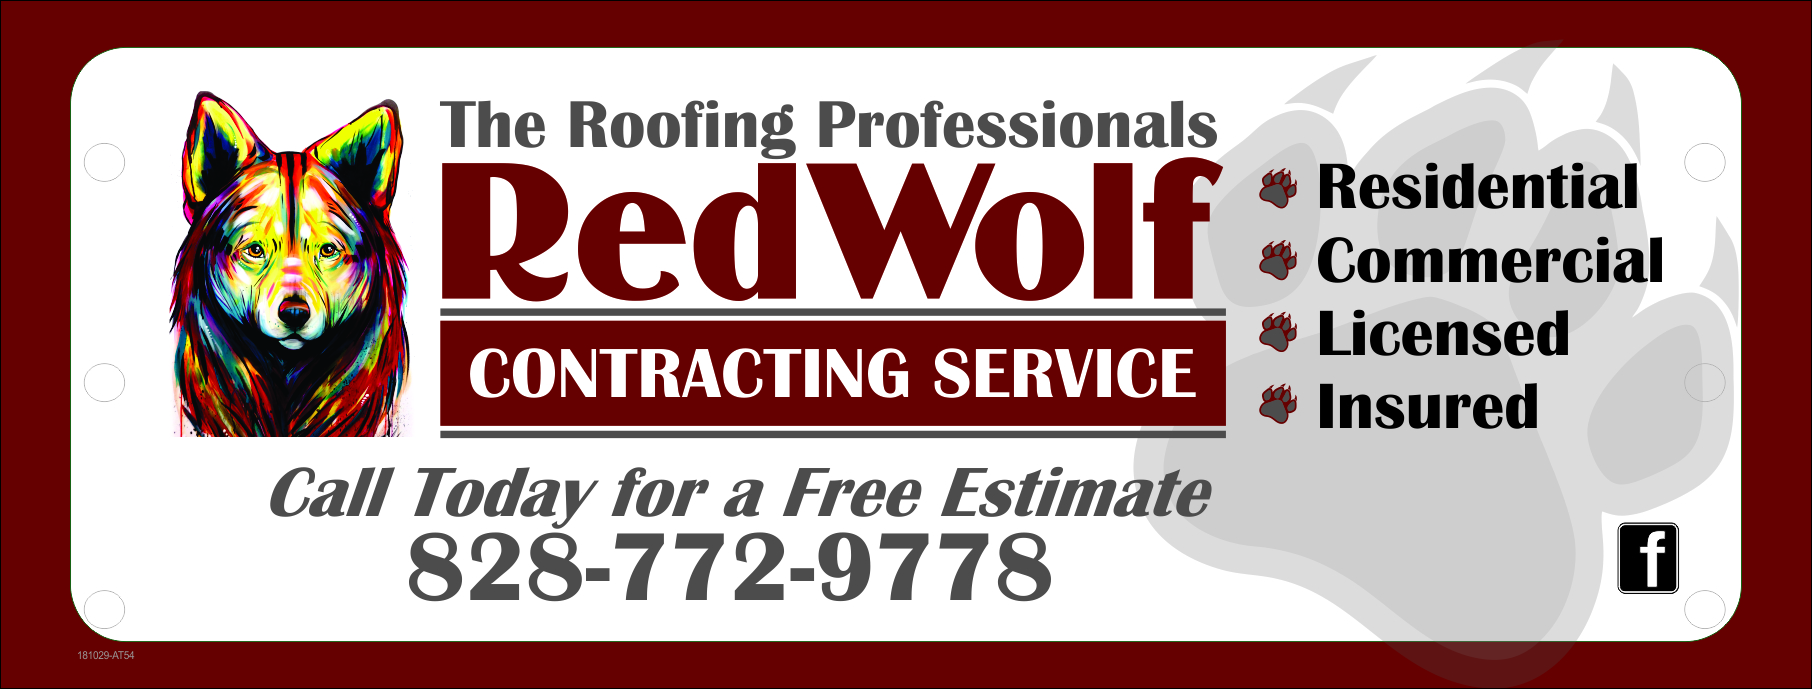 Trust the local WNC Certified Professionals at Red Wolf Contracting Service to handle all of your roofing needs. With an impeccable reputation, and key attention to detail.. Matt and the team are the ones to trust with your next roofing repair or replacement. Give him a call (828) 772-9778 or visit their website  nc-roofers.com  to set up your free roof inspection today!